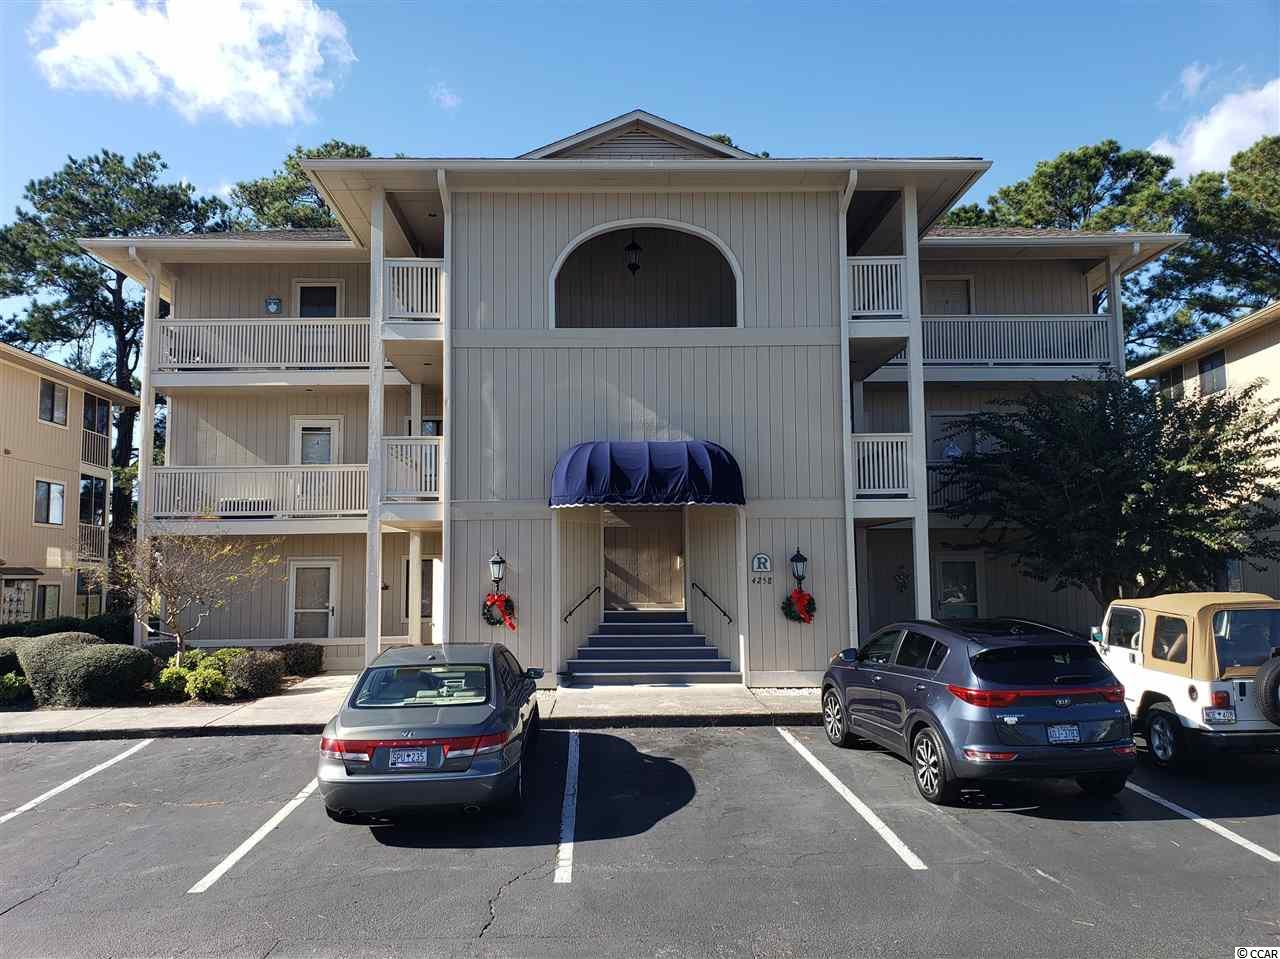 FOUND - The Needle in the Haystack! - a desirable top floor 2 bedroom & 2 bath, end unit. This fully furnished condo with a pond view is located in the desirable community of Cypress Bay, Little River. Entering your condo, you'll notice the newly laid luxury vinyl plank flooring that extends throughout every room. Easy care and waterproof too! The kitchen shines with freshly painted cupboards and all appliances convey. The breakfast bar adds seating for relaxed eating.  The dining area is open to the living room, has a ceiling fan, and its high vaulted ceiling adds volume. This relaxing living area opens to the screen-in porch which offers a view of green trees, the pond and fountain - peaceful & serene. The master bedroom (faces the pond) and has an attached bath. You have access from the Master to the screen porch, envision sipping your morning coffee here – start your day with tranquility. The Guest bedroom is at the other end of the hallway plus the guest bath. There is a convenient laundry room with washer and dryer and a pantry/storage closet. Catch some rays at the community pool and hot tub/spa. You're just minutes from all the amenities offered by this coastal region: retail & consignment shopping – shop 'til you drop; a myriad of restaurants whose offerings will please any palate; tee off on one of the 65+ championship golf courses within a 25mile radius; cruise thru art galleries, join a class - painting, jewelry making or pottery. Kayak in the ocean & rivers. Catch your limit on a deep-water fishing charter or from a pier. Try your hand at flounder gigging.  Embrace lady luck on a moon lite floating casino cruise. Stop by Patios in Little River for a drink & listen to live music under the stars. Love the beach? You're just a sip of lemonade & a few short minutes to the sugar white sands of pristine serene Sunset Beach, NC and to the beaches of SC.  Ideally located between Wilmington 1hour N & N Myrtle Beach SC 5 min S.